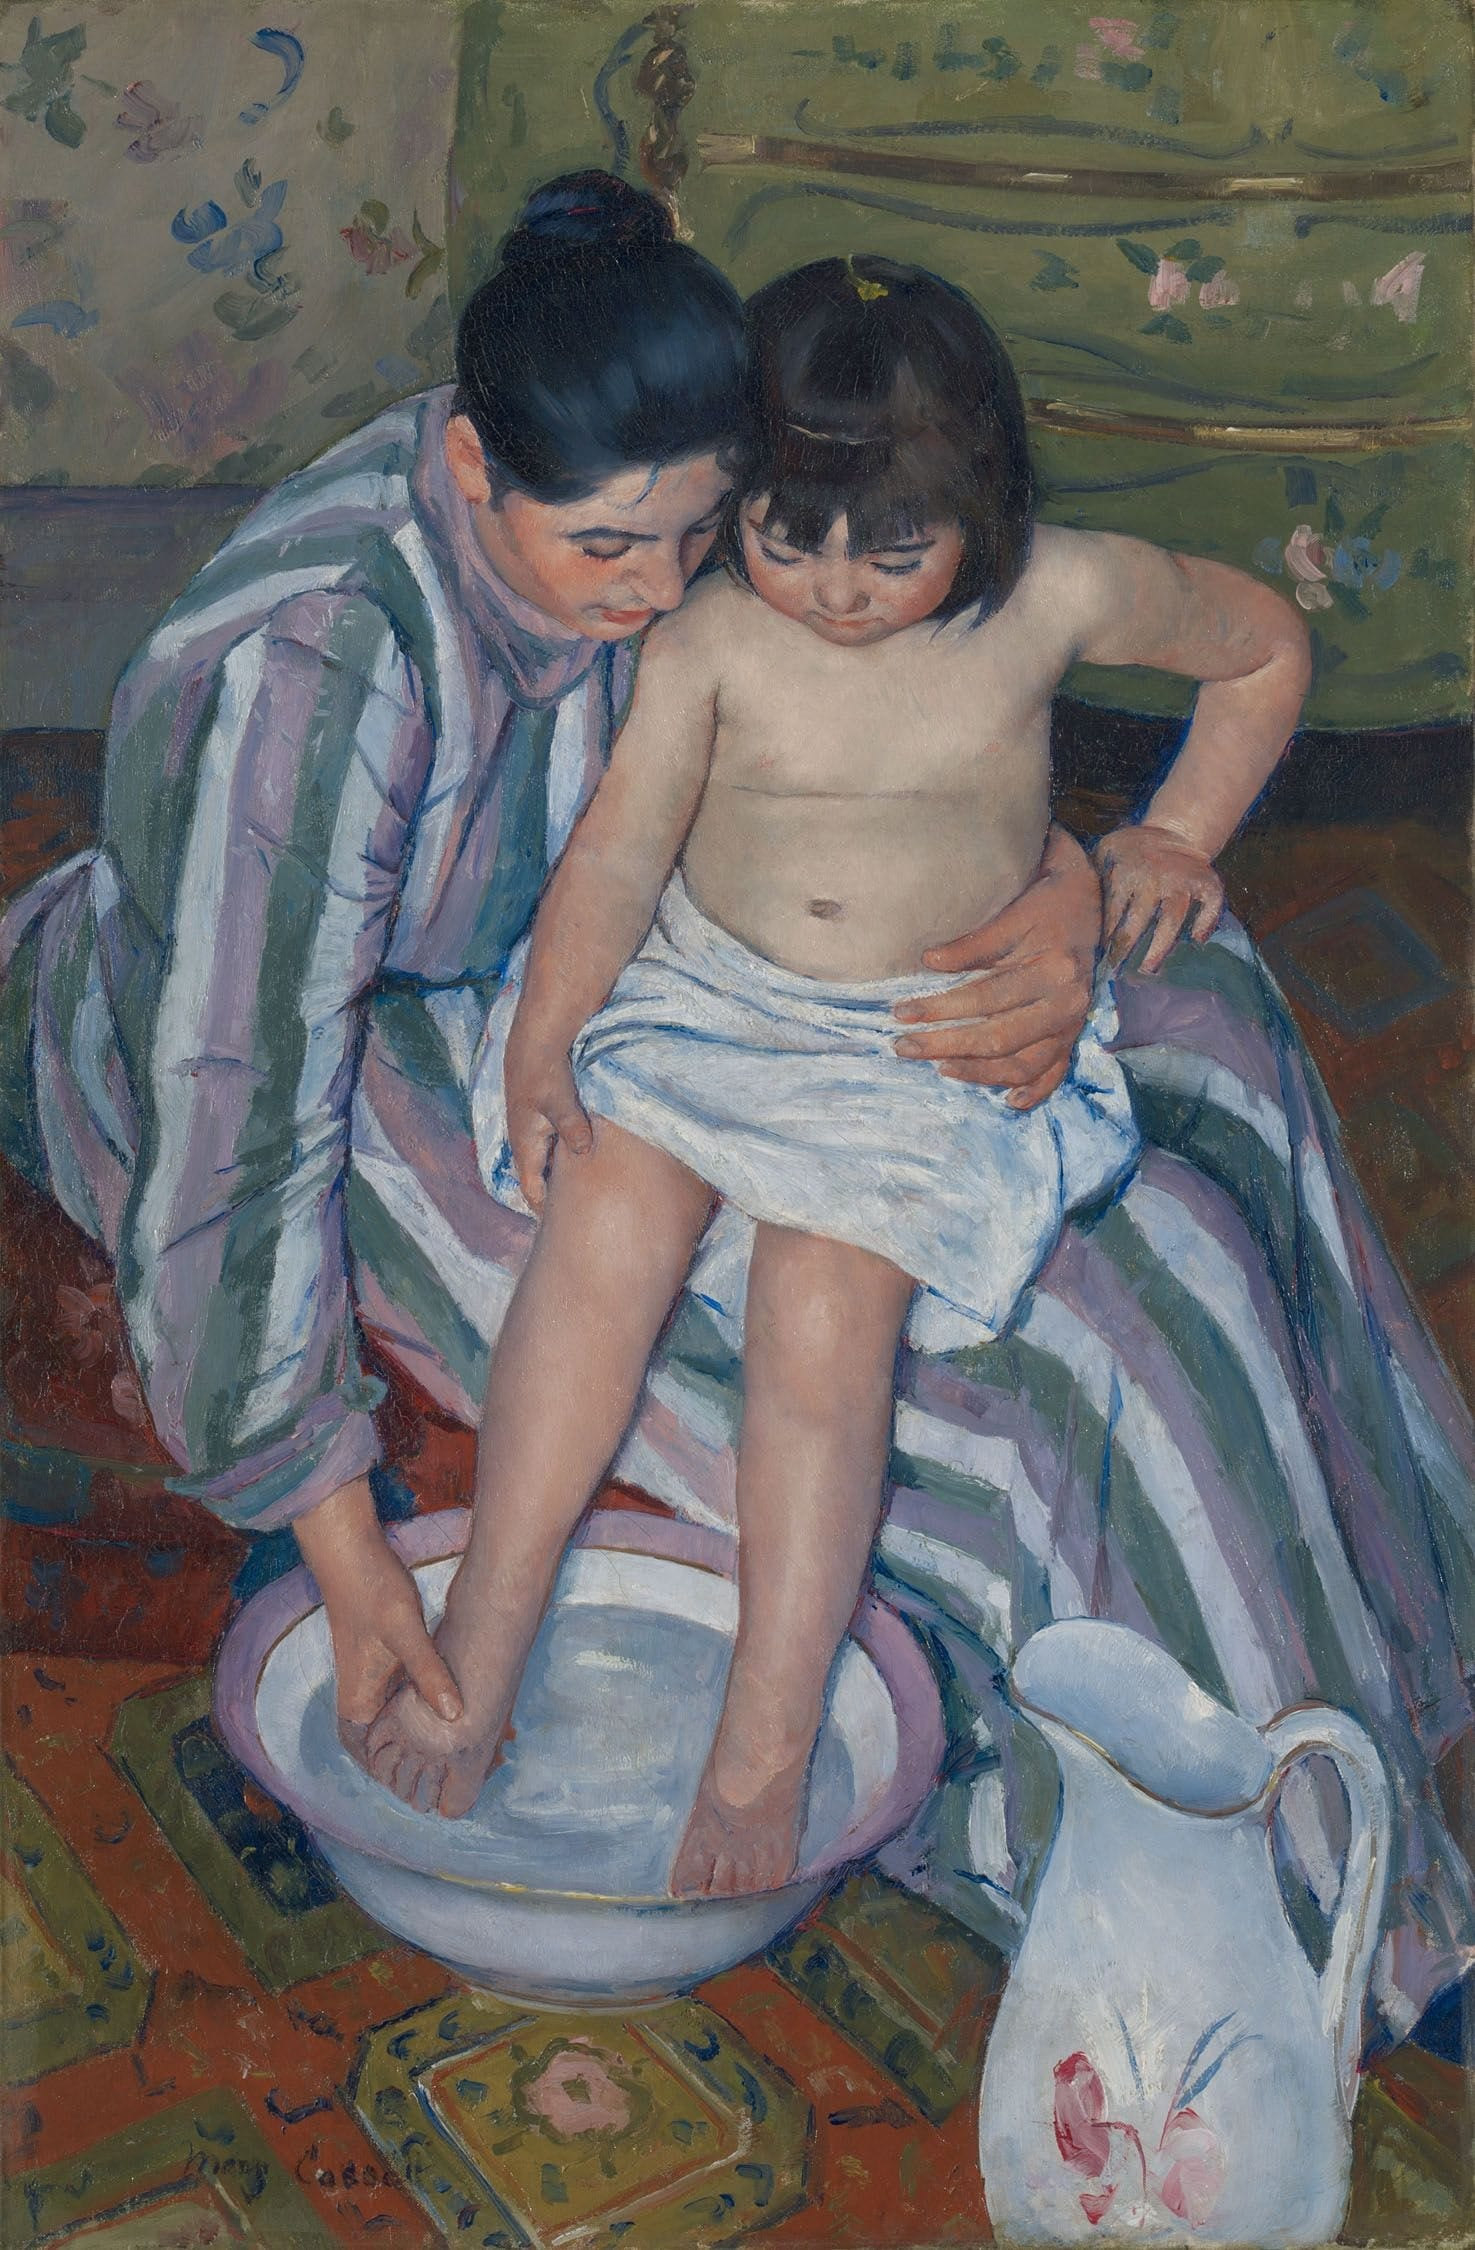 The Childs Bath by Mary Cassatt 1893 @ The Art Institute of Chicago